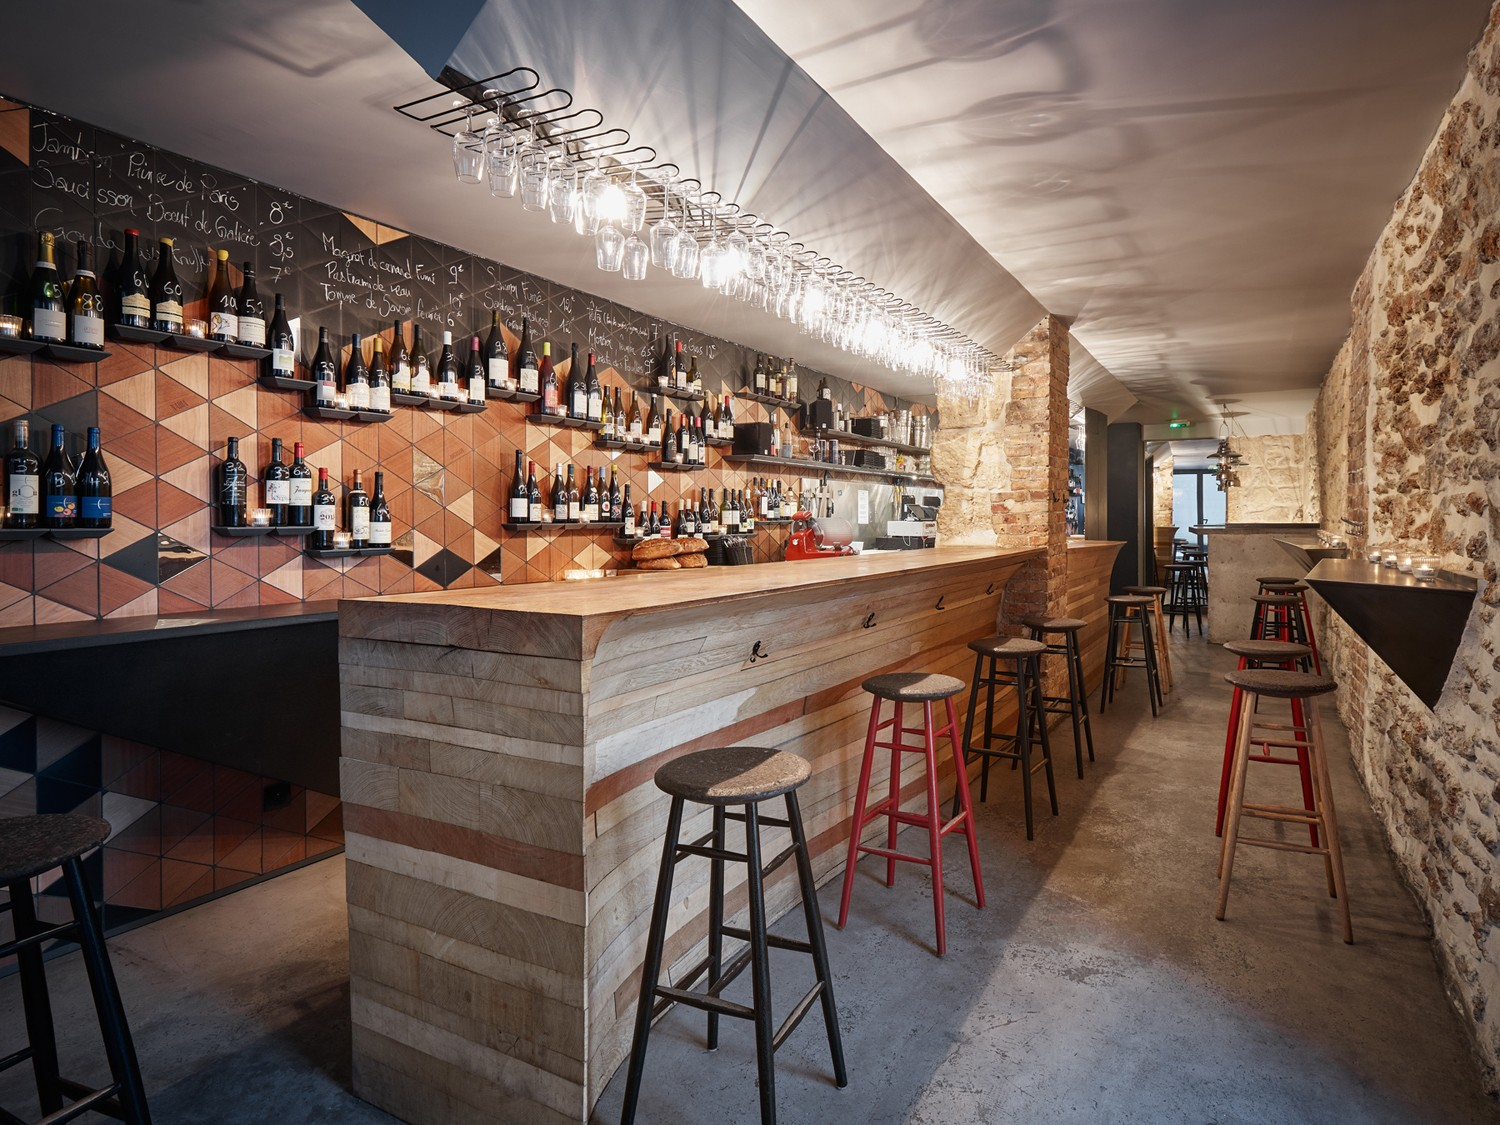 Woodwine Bar 224 Vins 224 Paris Par L Atelier Jmca Journal